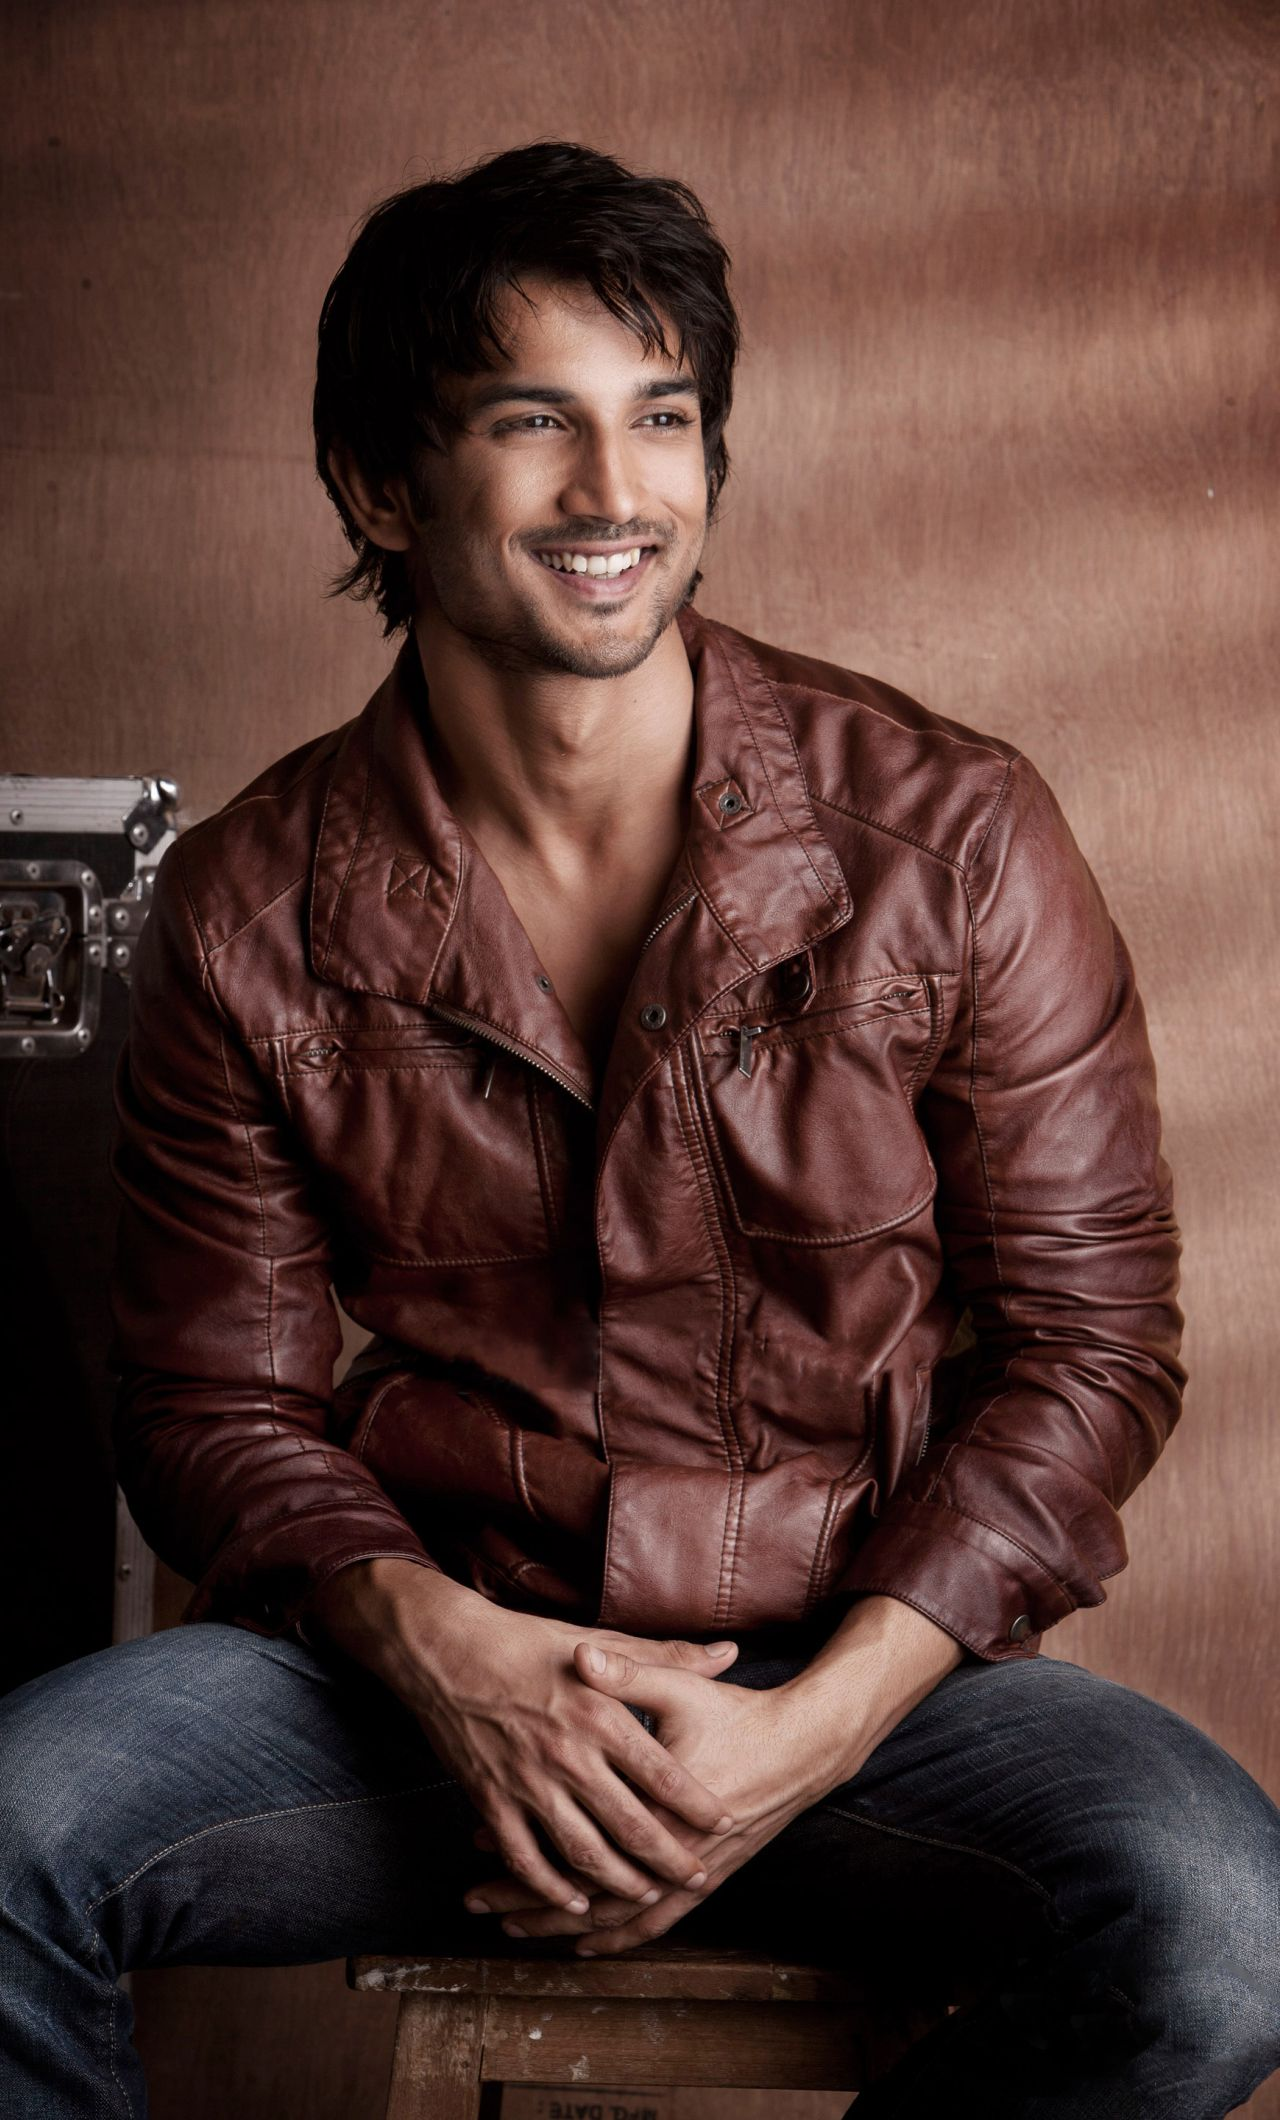 1280x2120 Sushant Singh Rajput Smiling Hd Wallpapers iPhone 6 plus